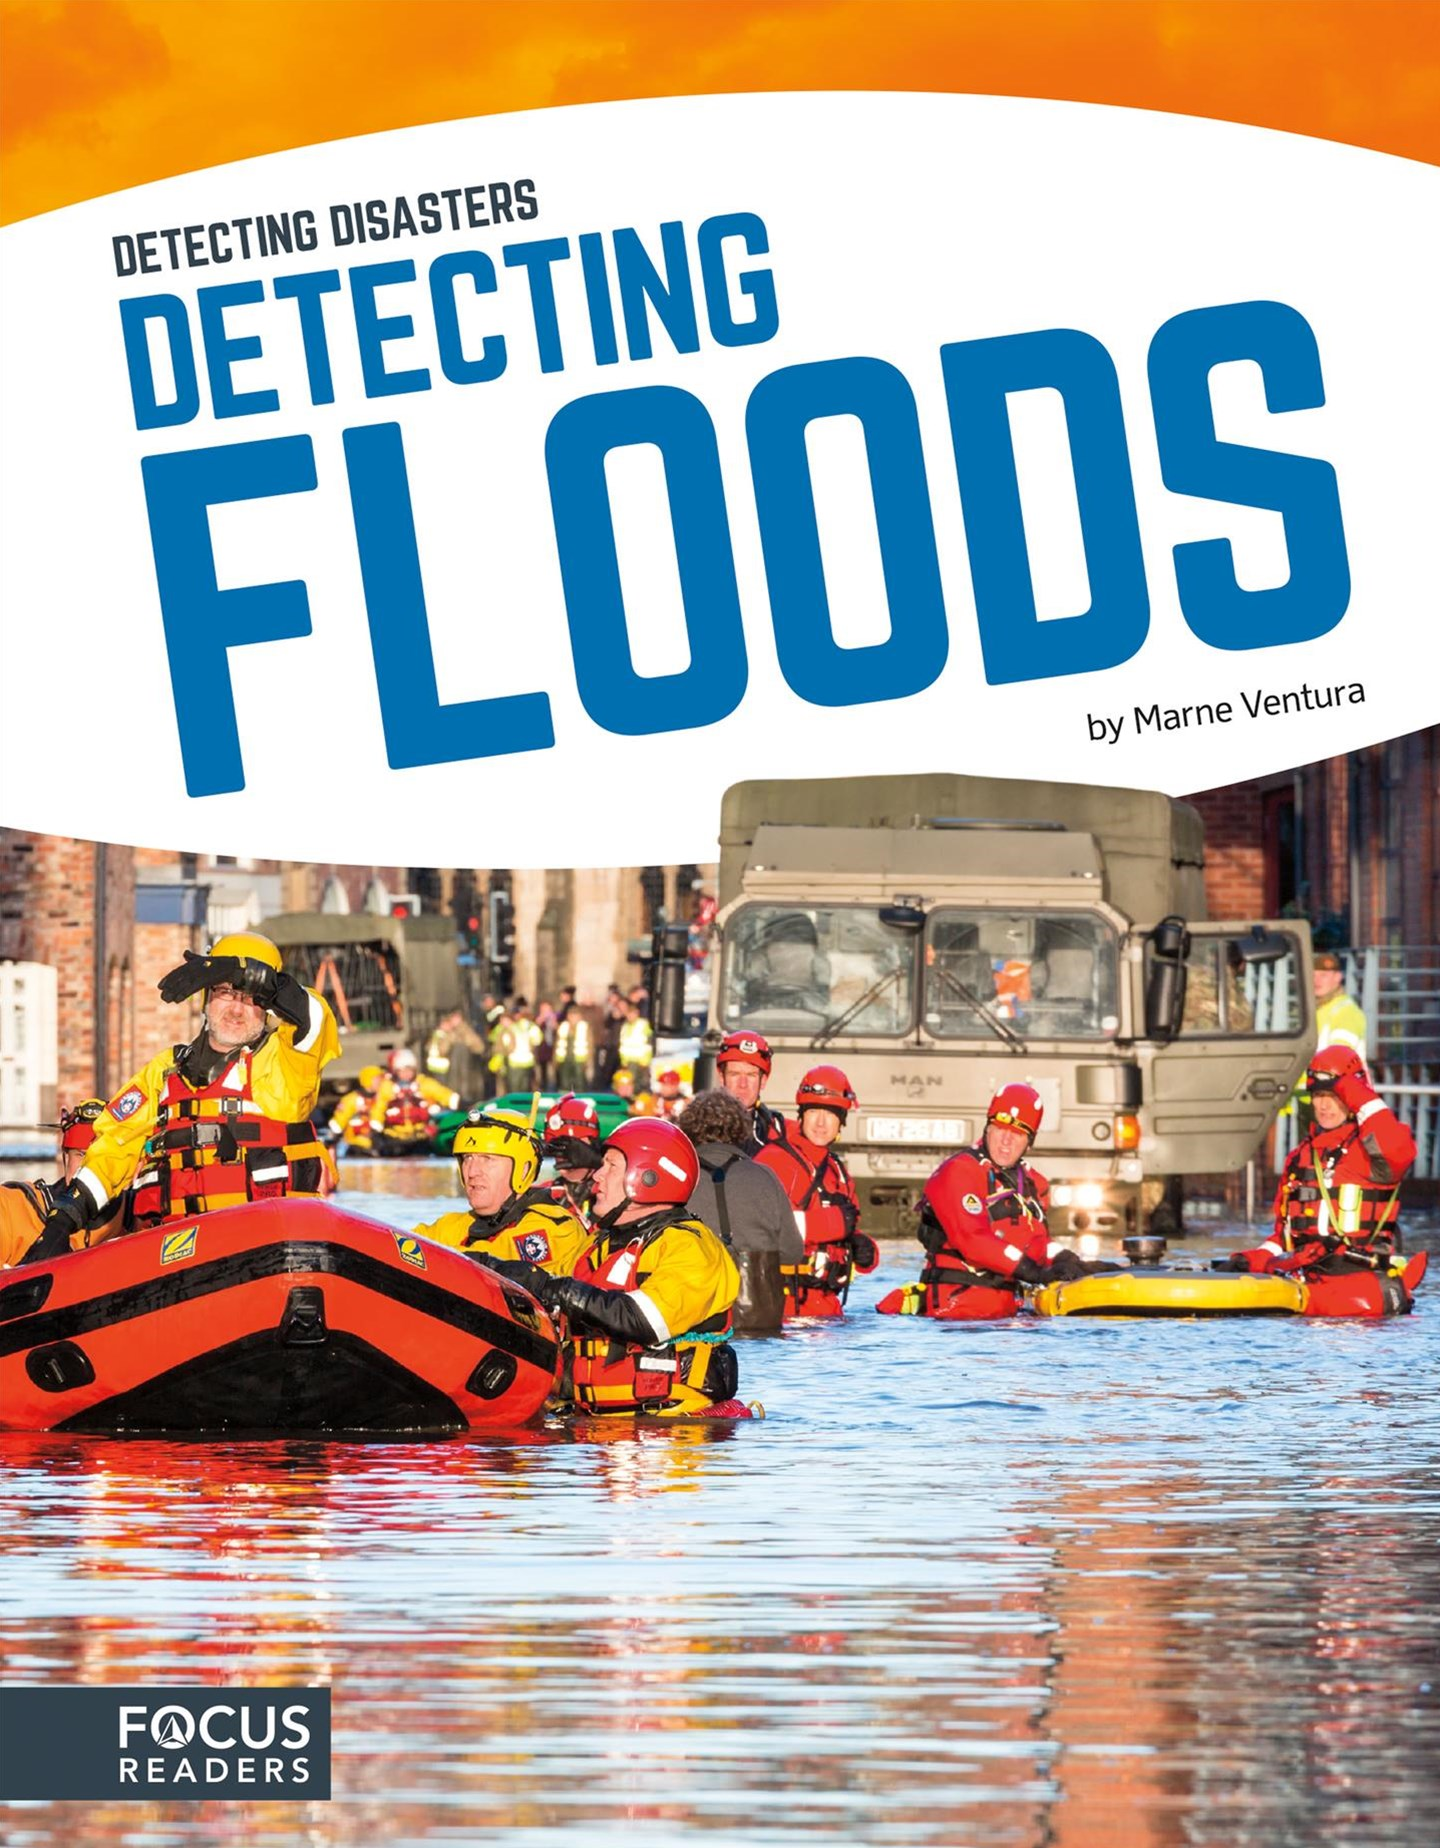 Detecting Diasaters: Detecting Floods